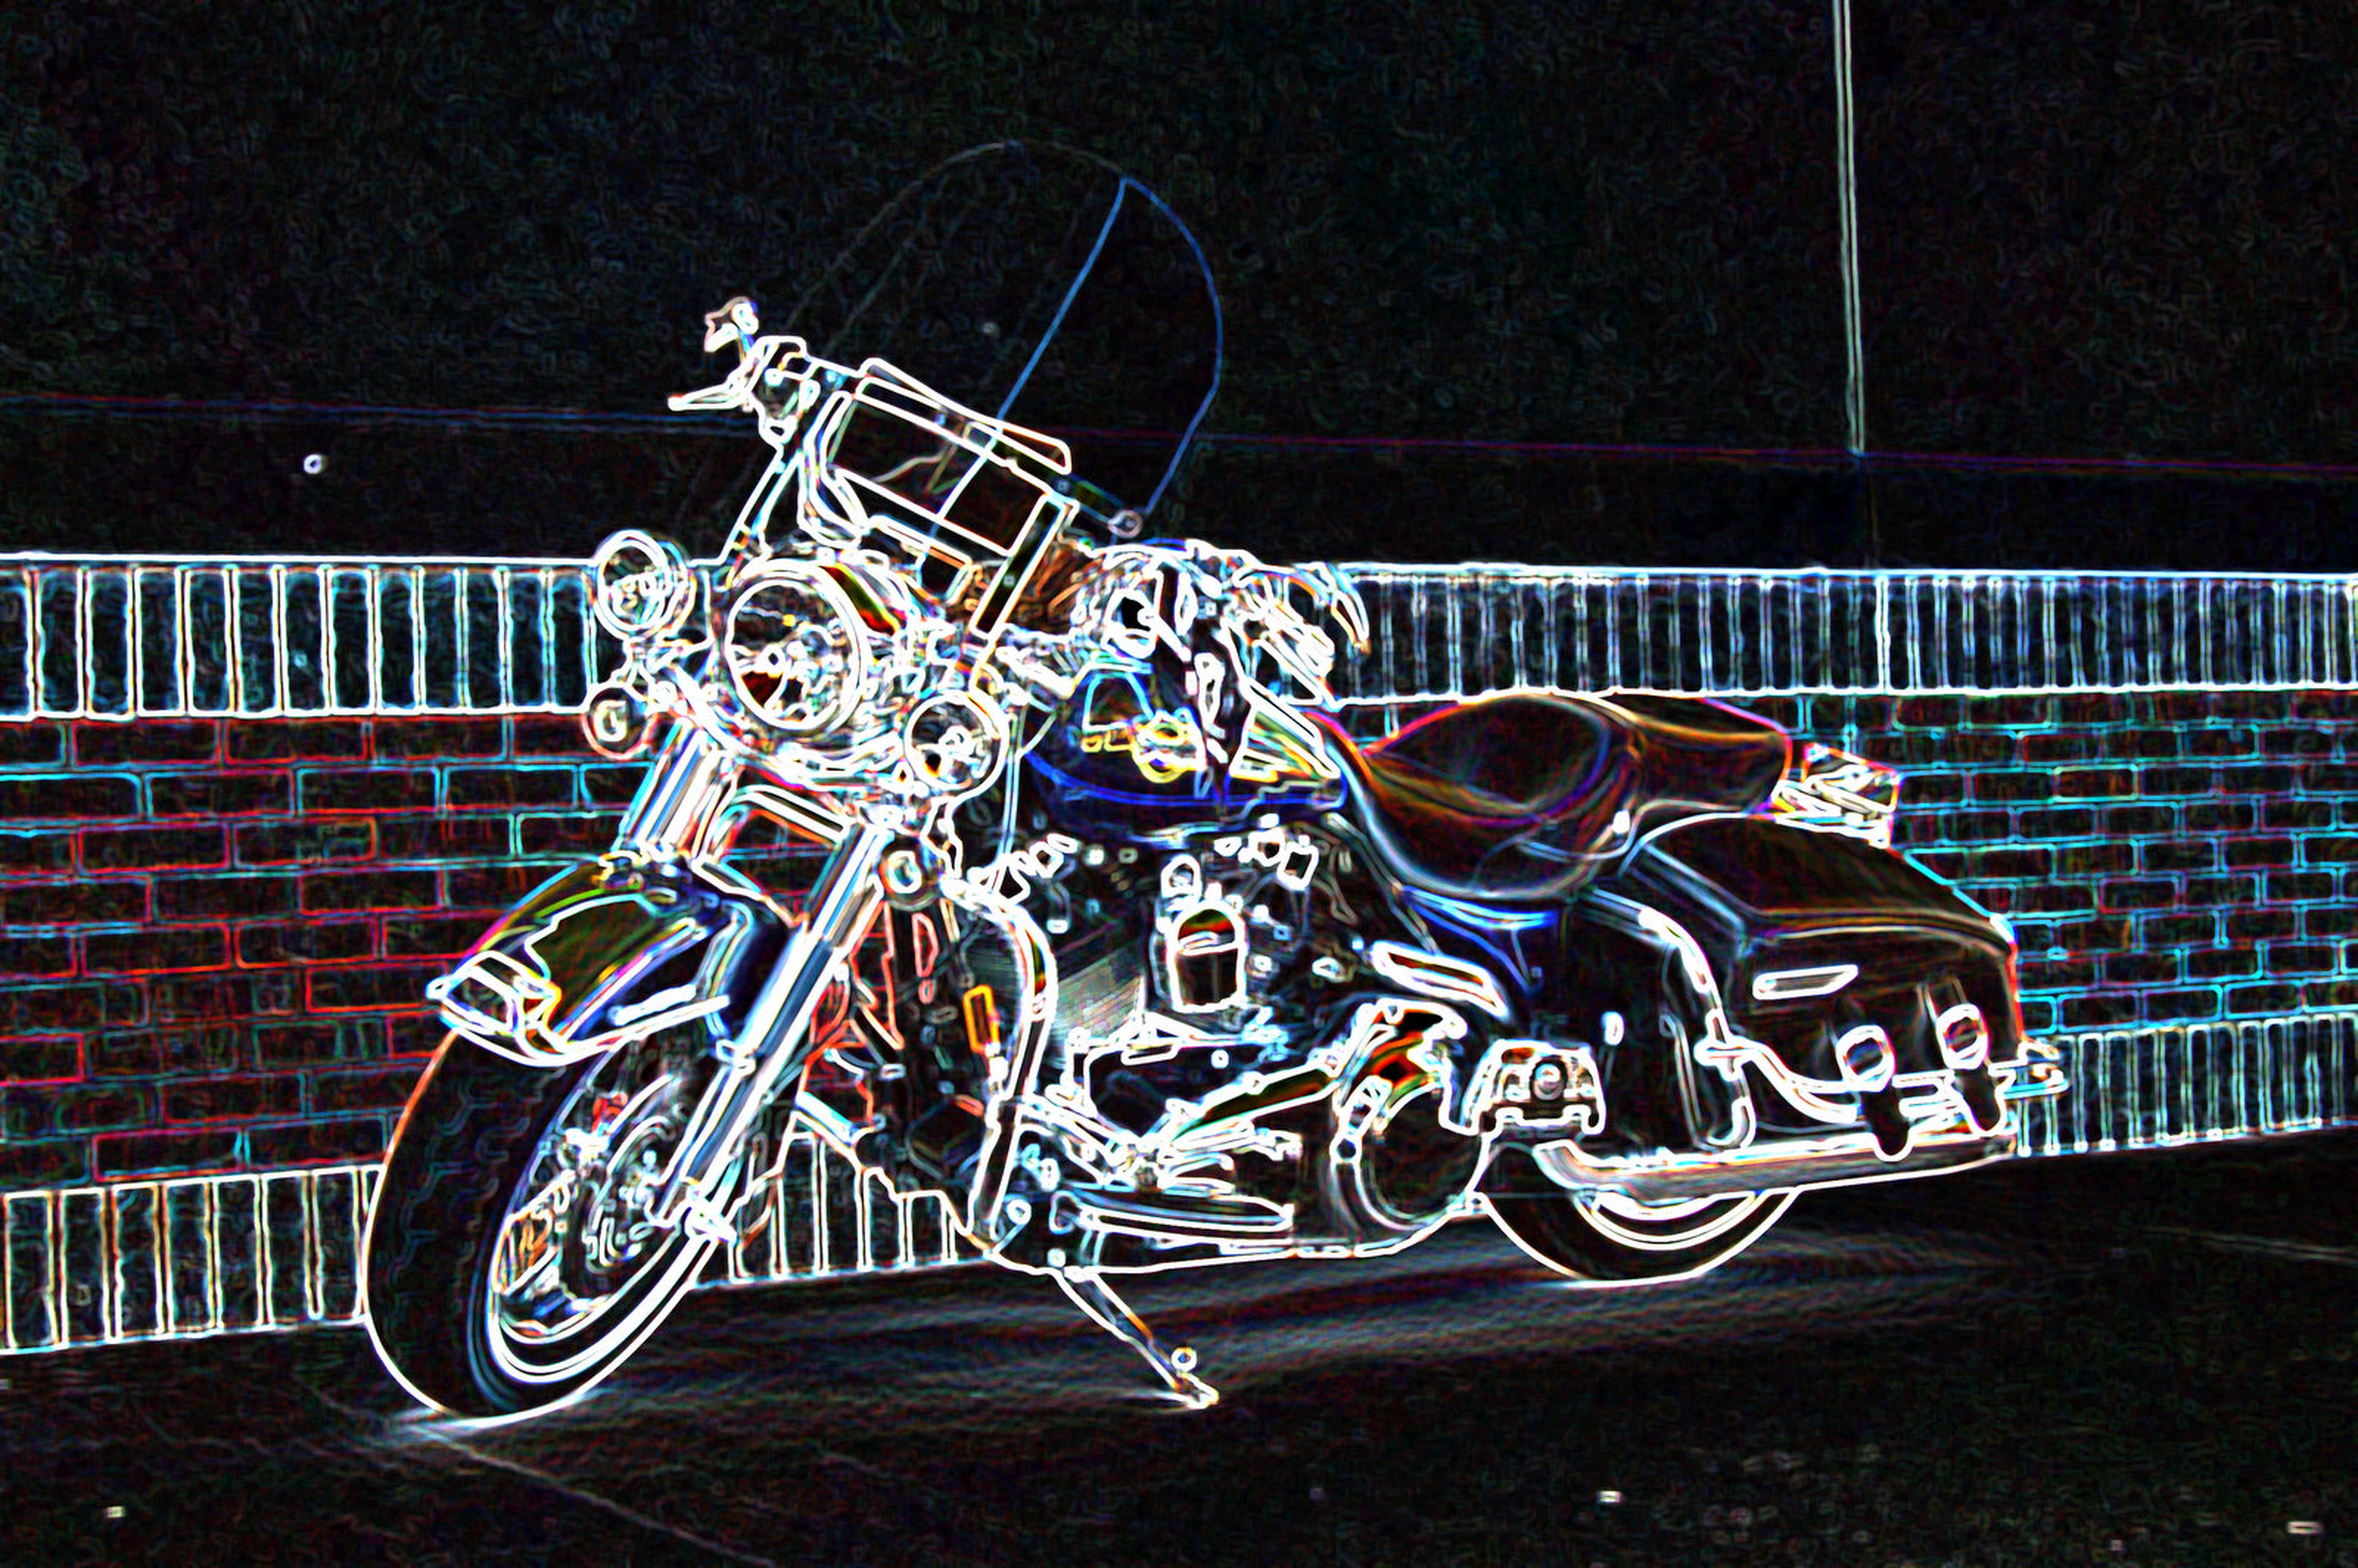 bicycle, wall - building feature, night, transportation, railing, metal, built structure, art, no people, stationary, architecture, art and craft, outdoors, creativity, graffiti, building exterior, land vehicle, mode of transport, wall, street